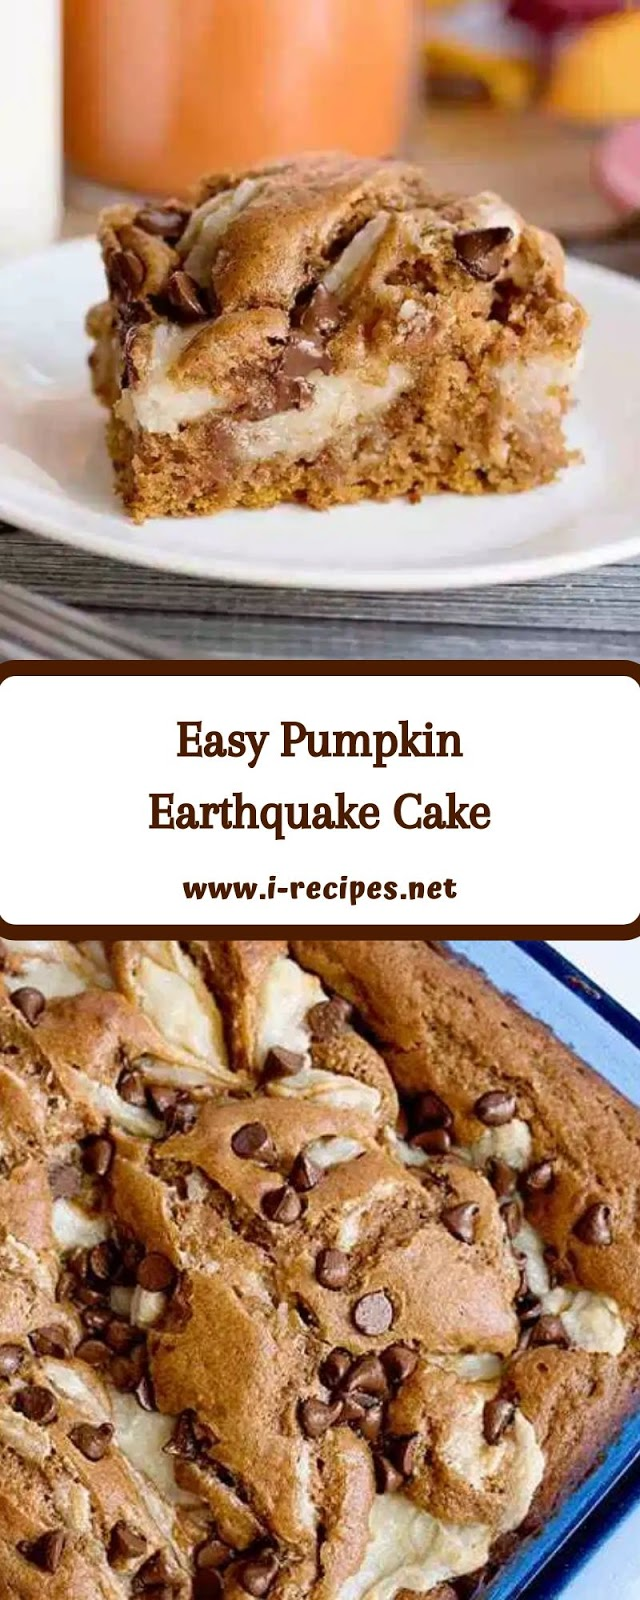 Easy Pumpkin Earthquake Cake